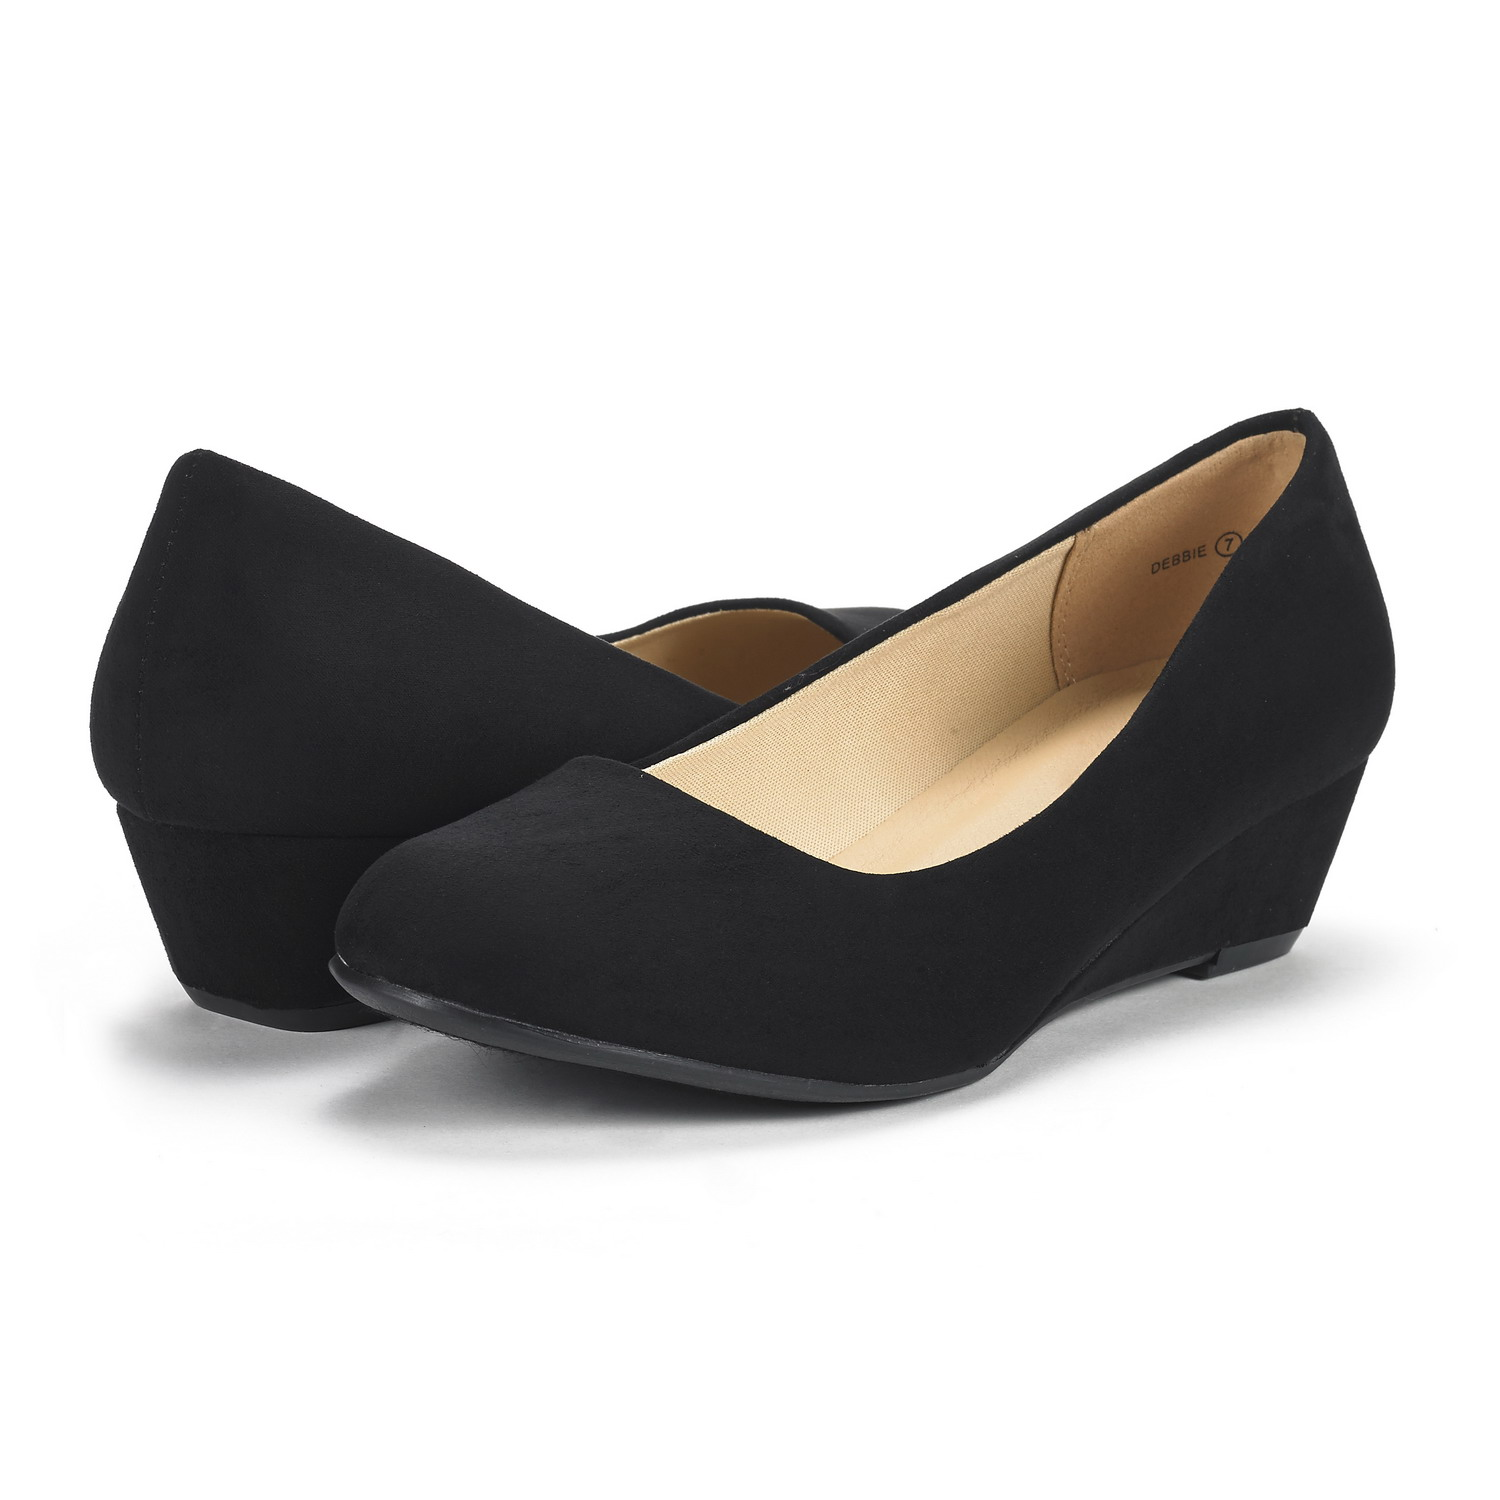 DREAM-PAIRS-Women-039-s-Mid-Wedge-Heel-Shoes-Slip-On-Comfort-Dress-Shoes-Suede-PU thumbnail 36